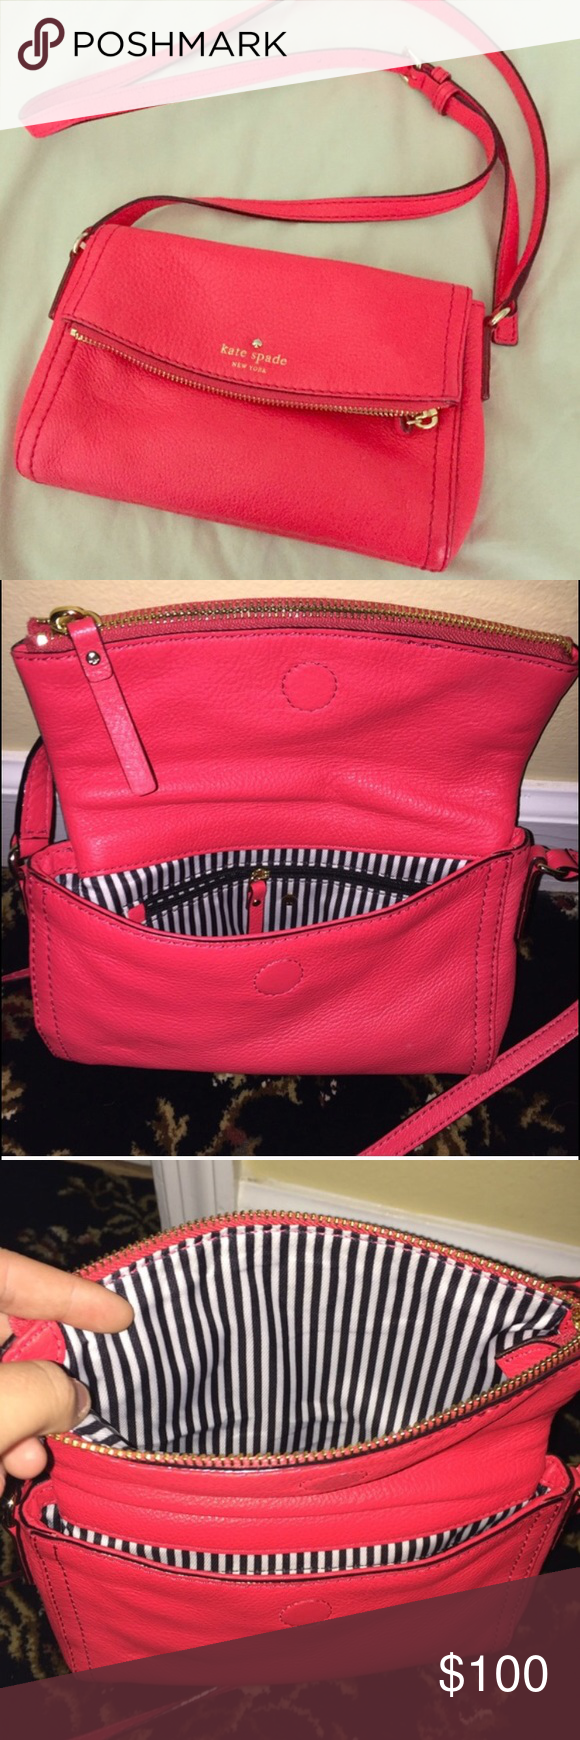 Reddish/orange/pinkish color Kate spade purse Like new Kate spade purse. Only worn two times. Comes with dust box and bag... willing to trade for another Kate spade purse Bags Crossbody Bags